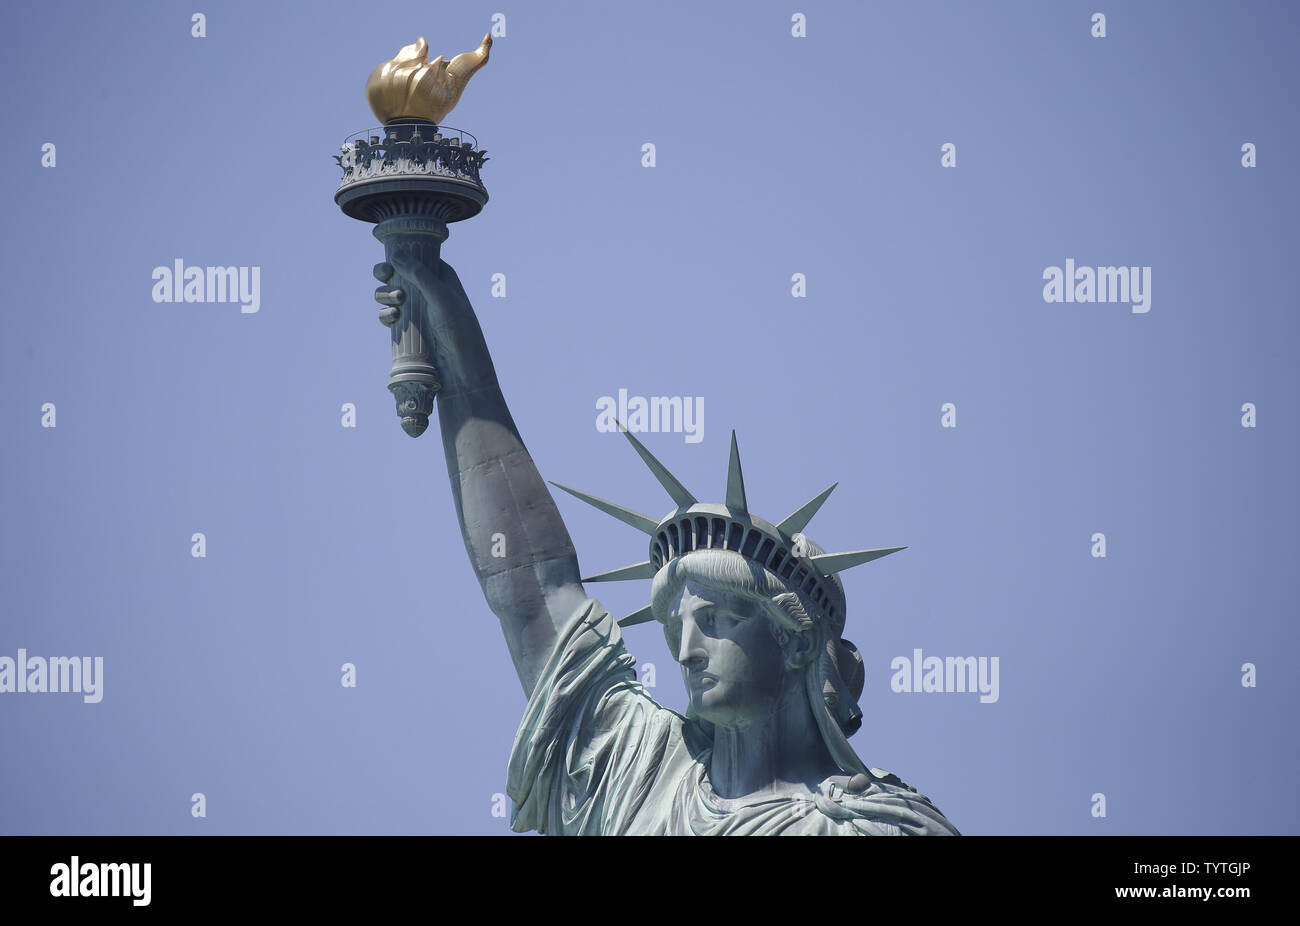 The Statue of Liberty stands on Liberty Island 2 days before Independence Day and the 4th of July in New York City on July 2, 2018.      Photo by John Angelillo/UPI Stock Photo